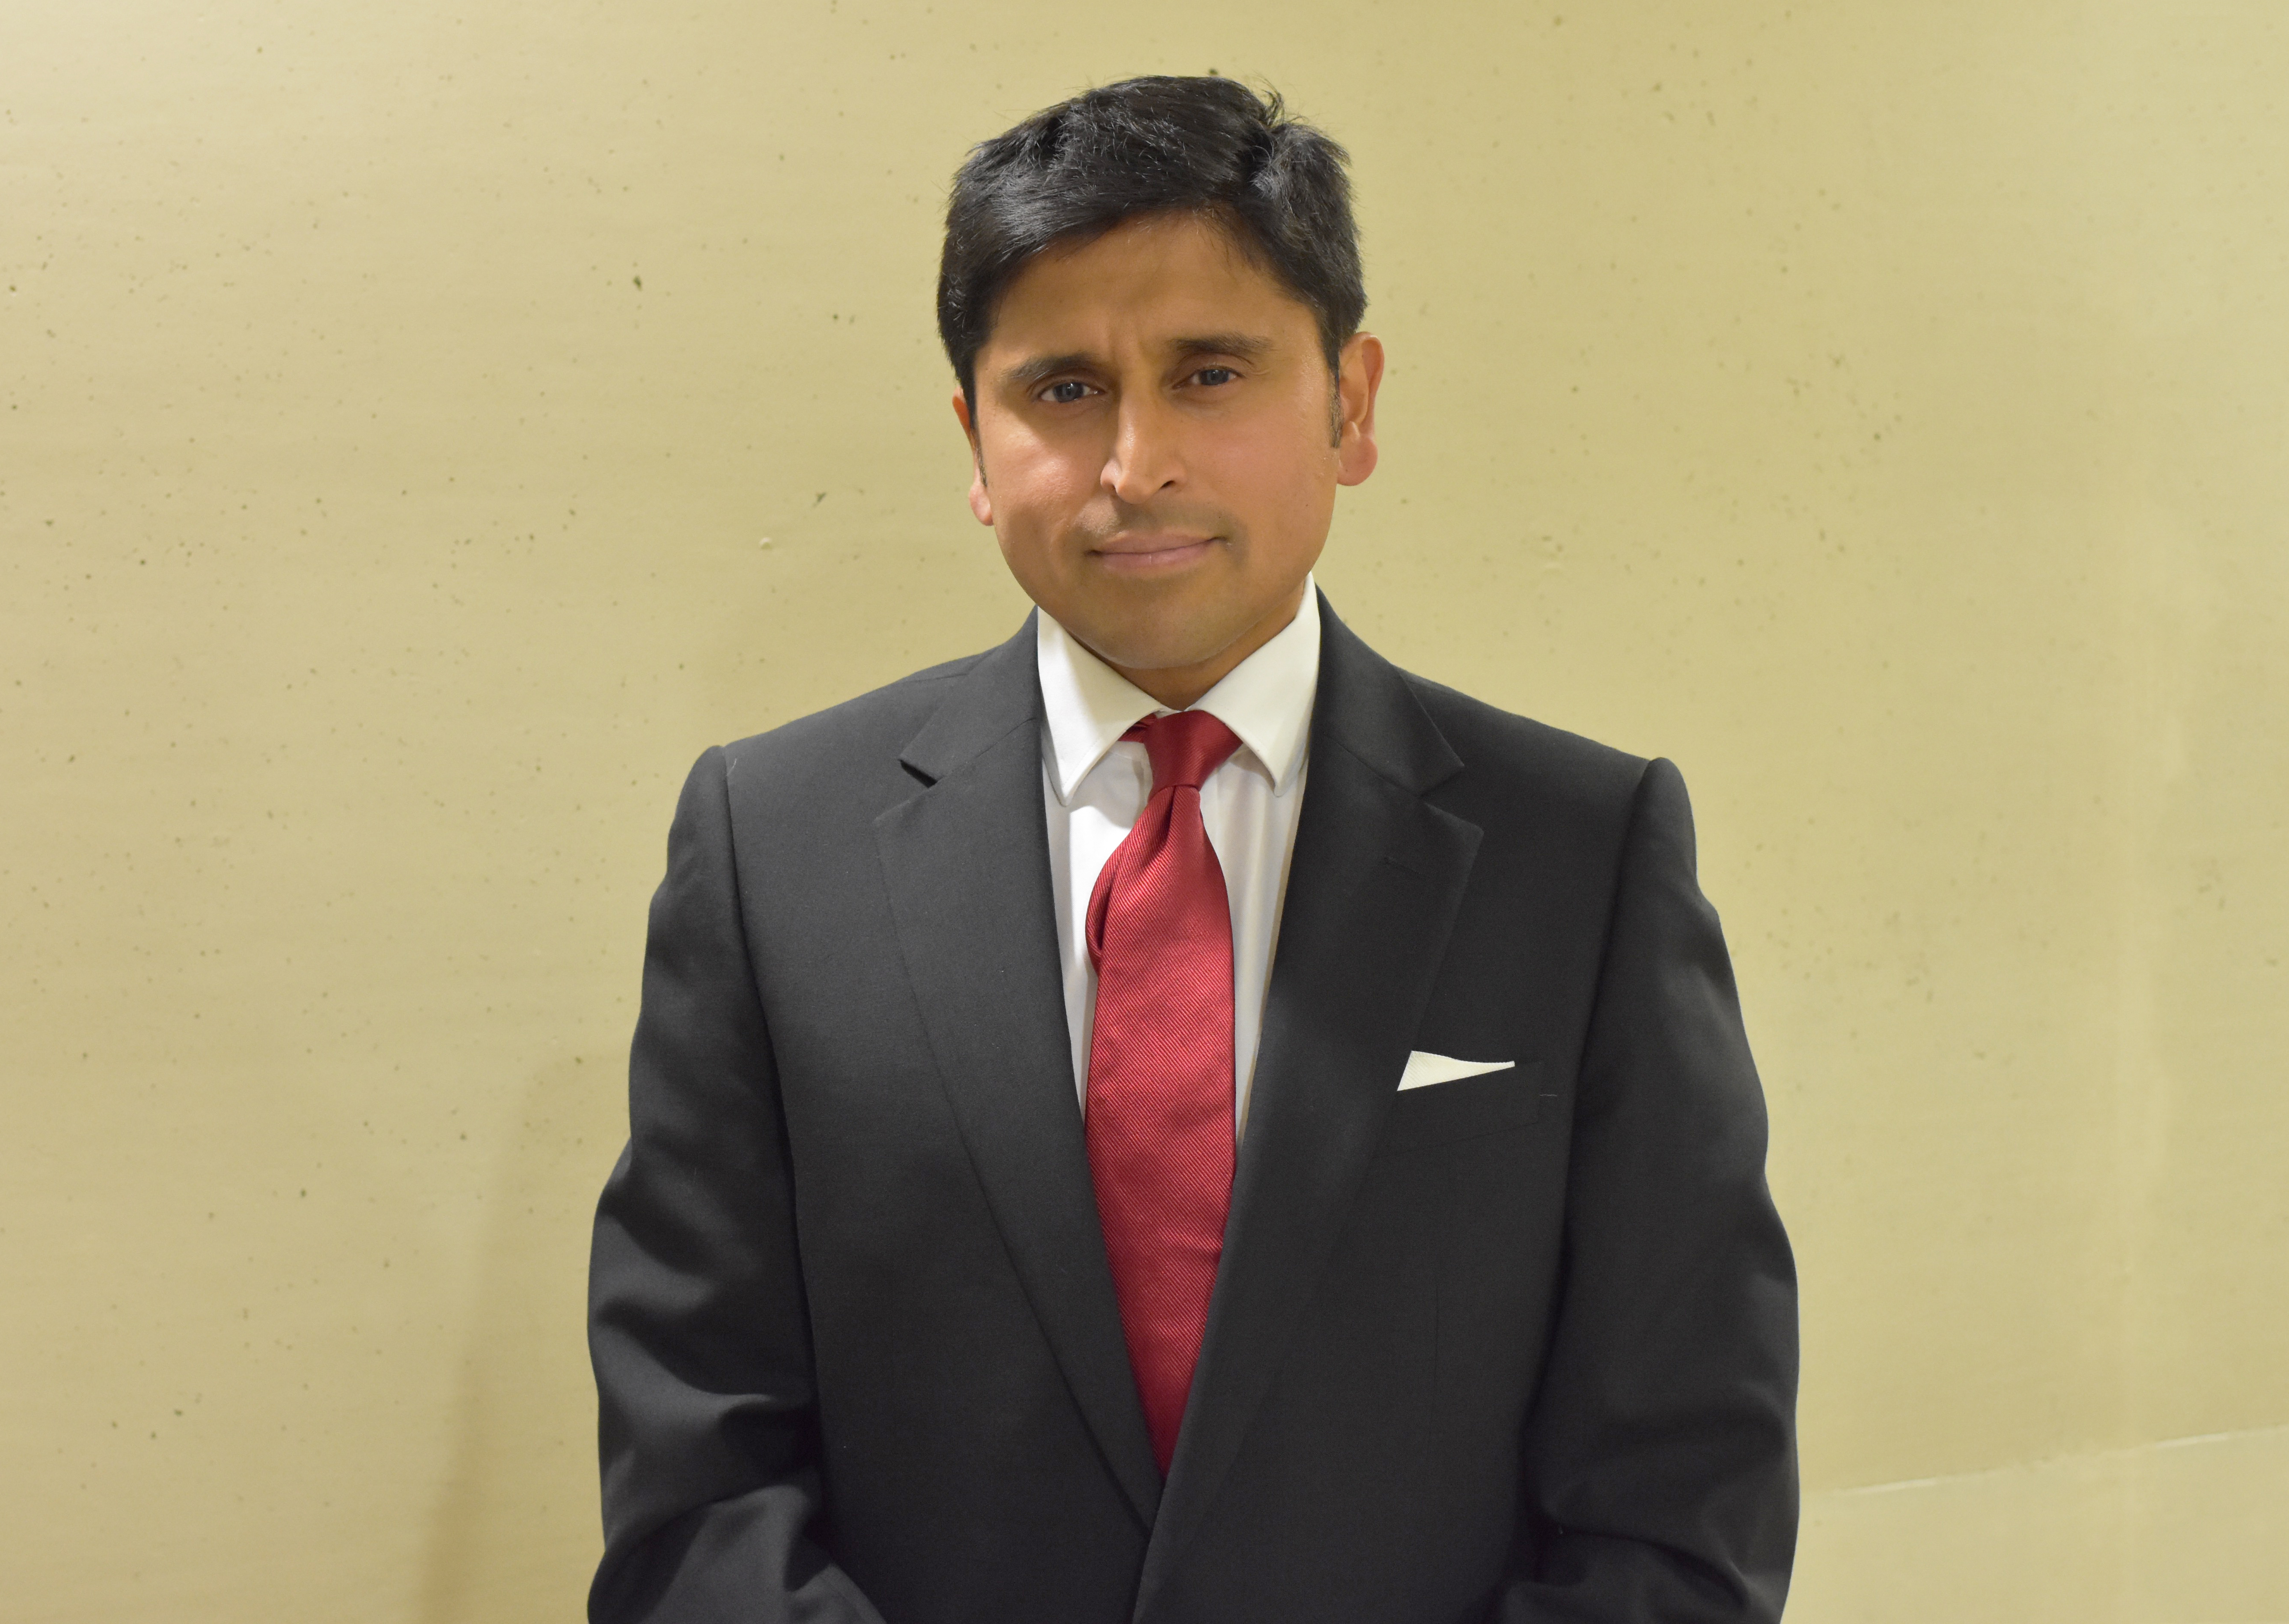 Jaspal Phull is a consultant Consultant Urologist at Circle Bath Hospital